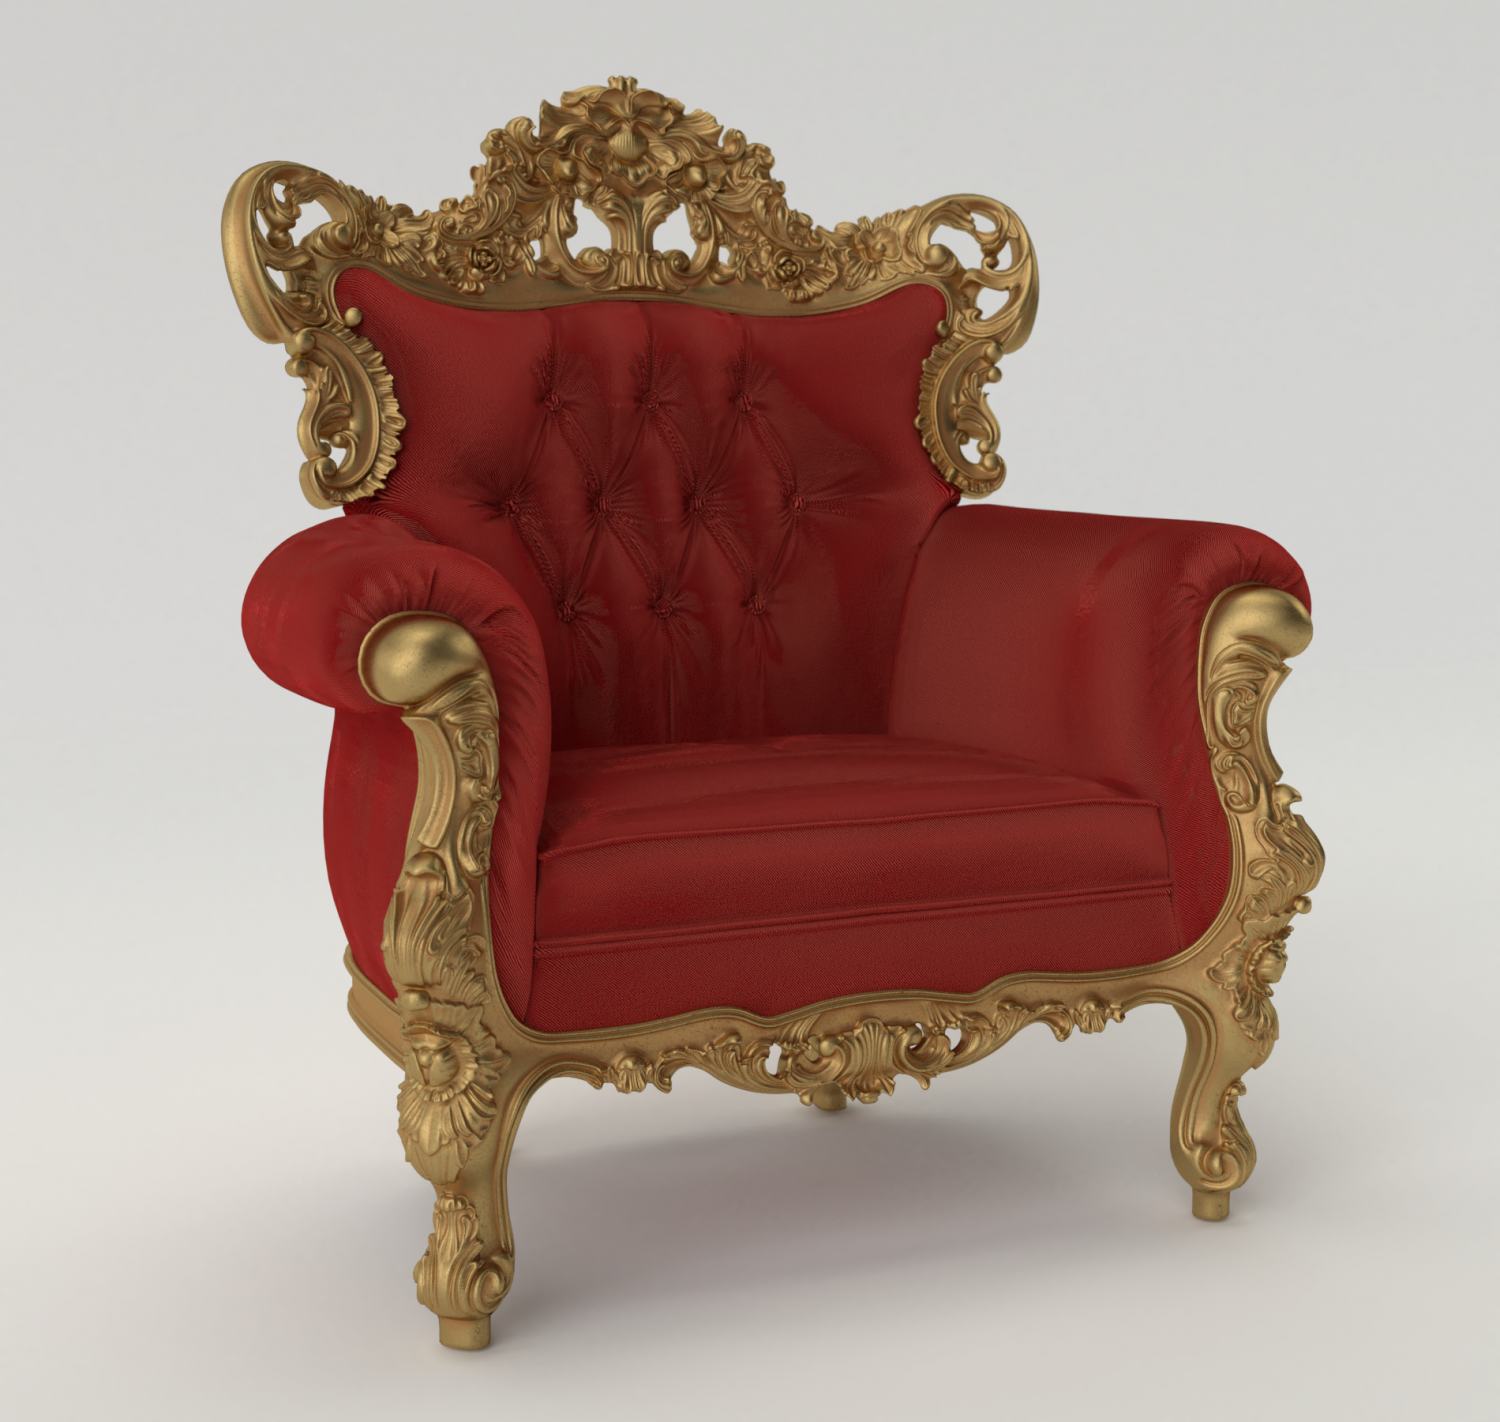 Baroque Chair 3d Model In Chair 3dexport